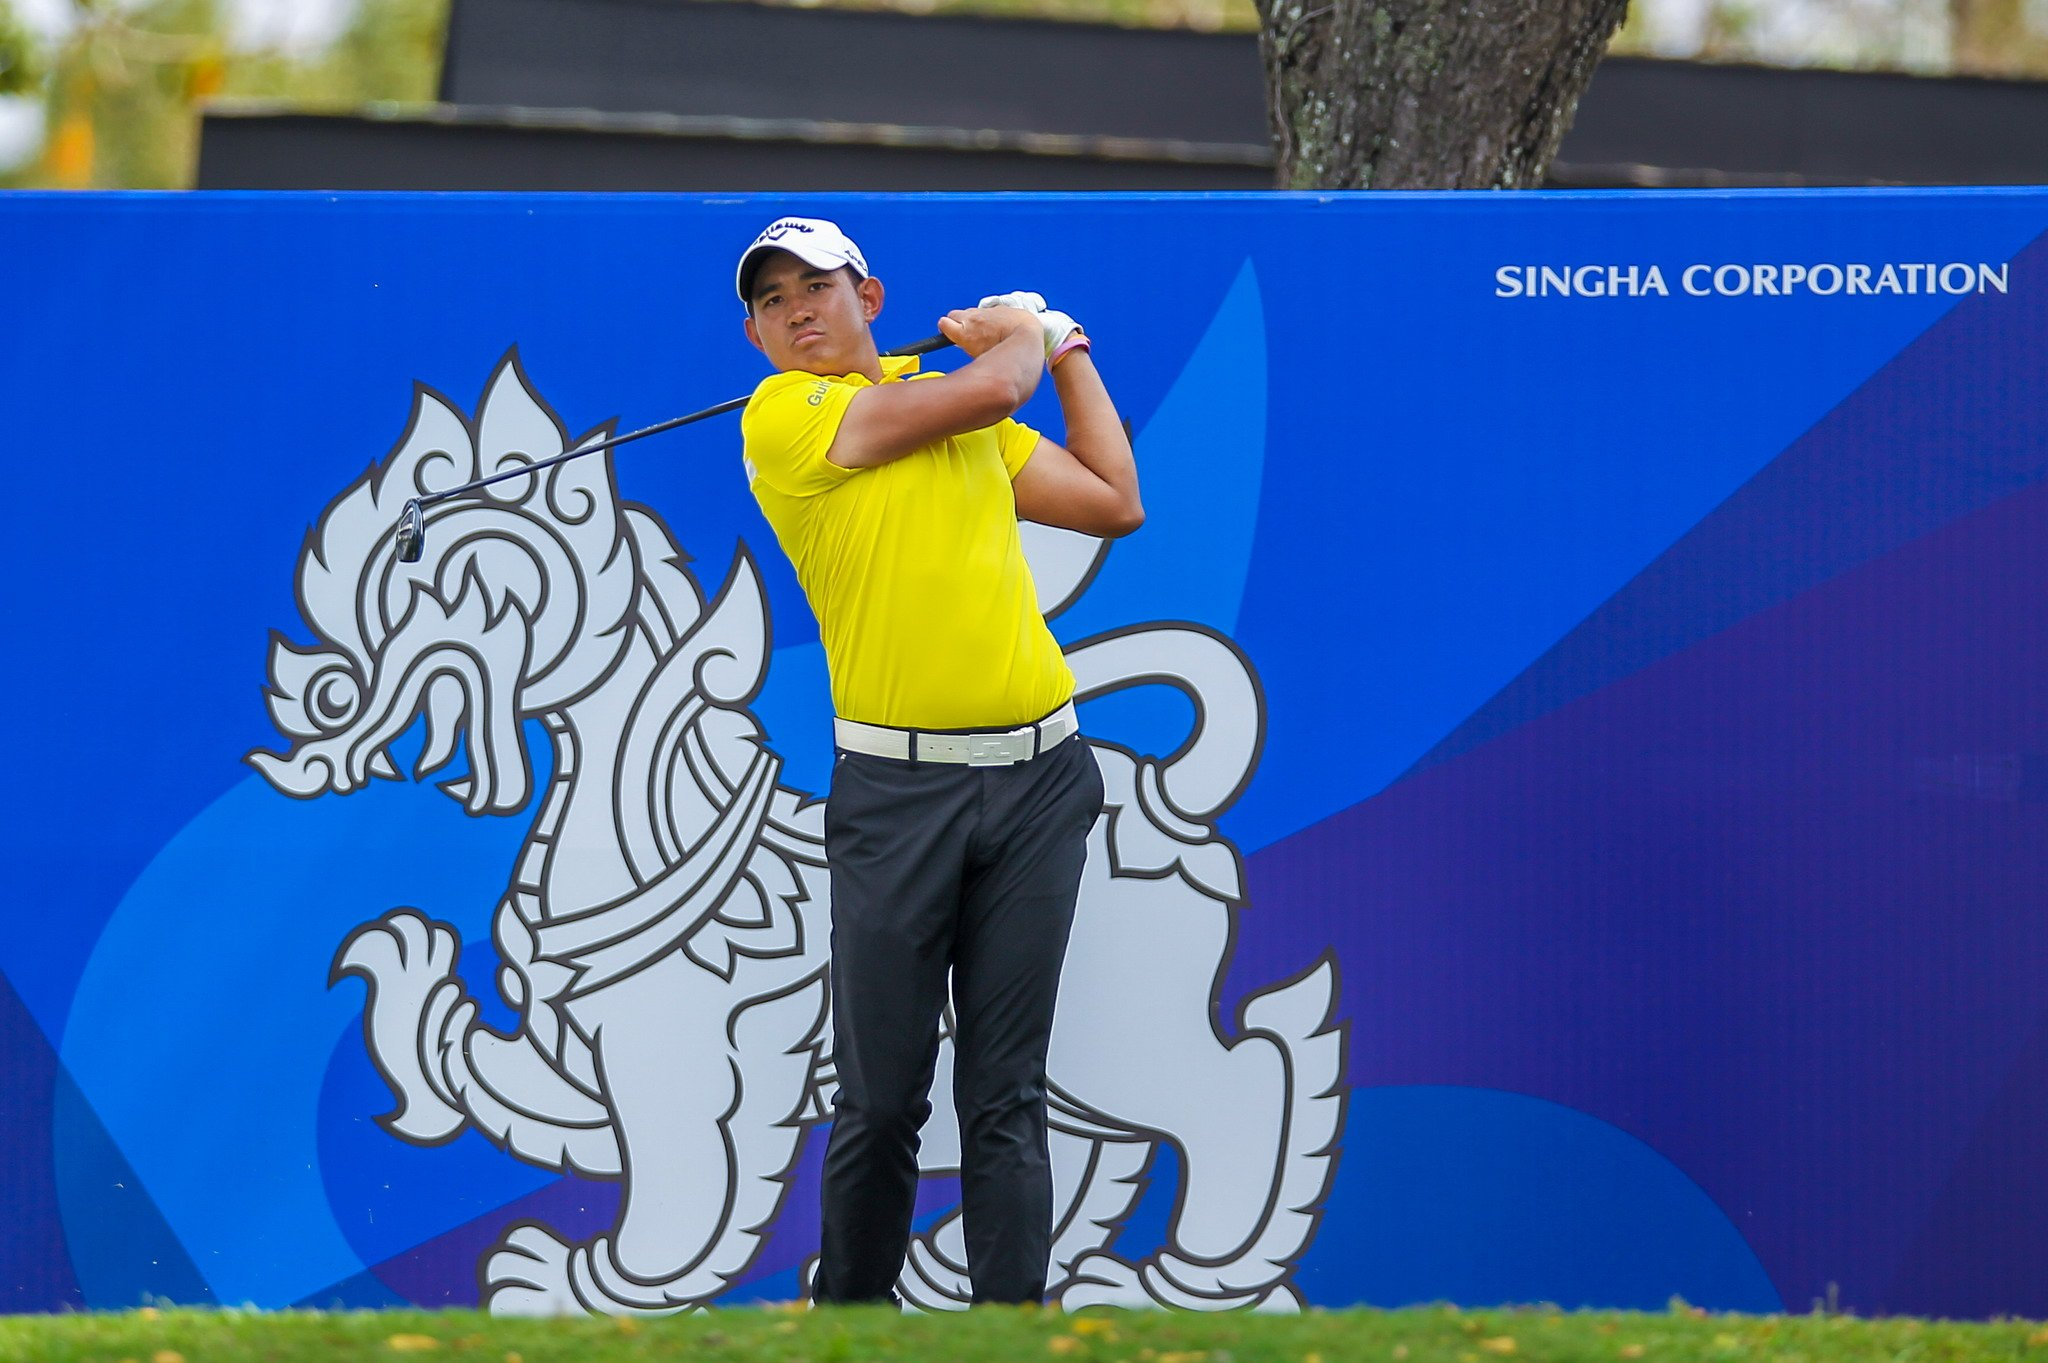 Pavit goes on birdie blitz to take slim lead at Boonchu Ruangkit Championship